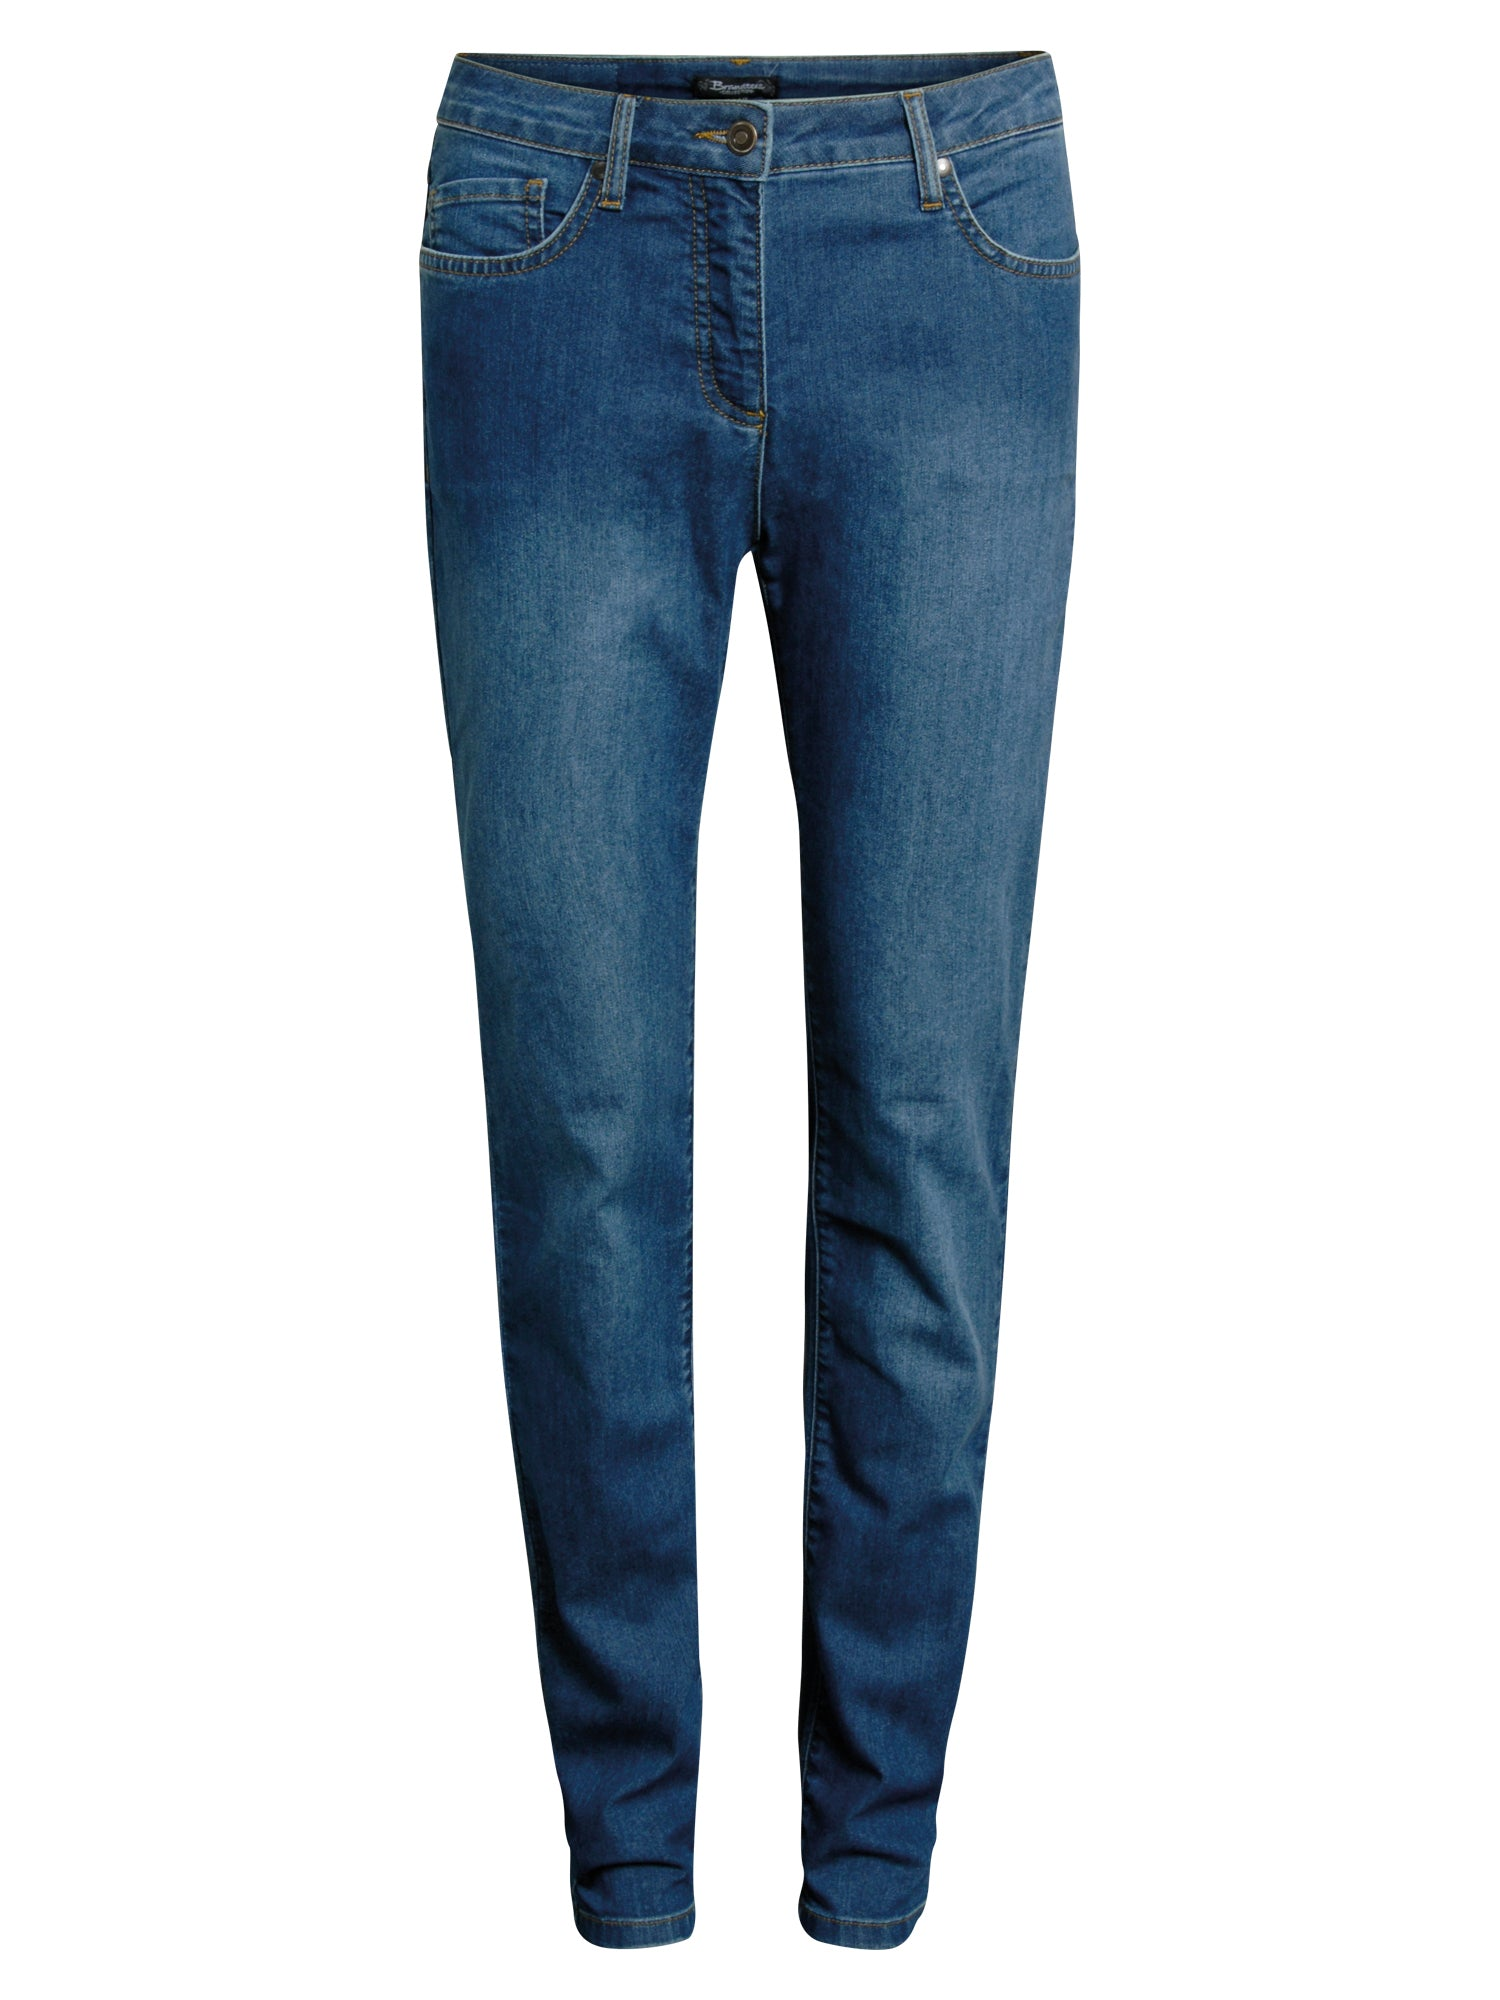 Image of   Jeans Victoria - Denim